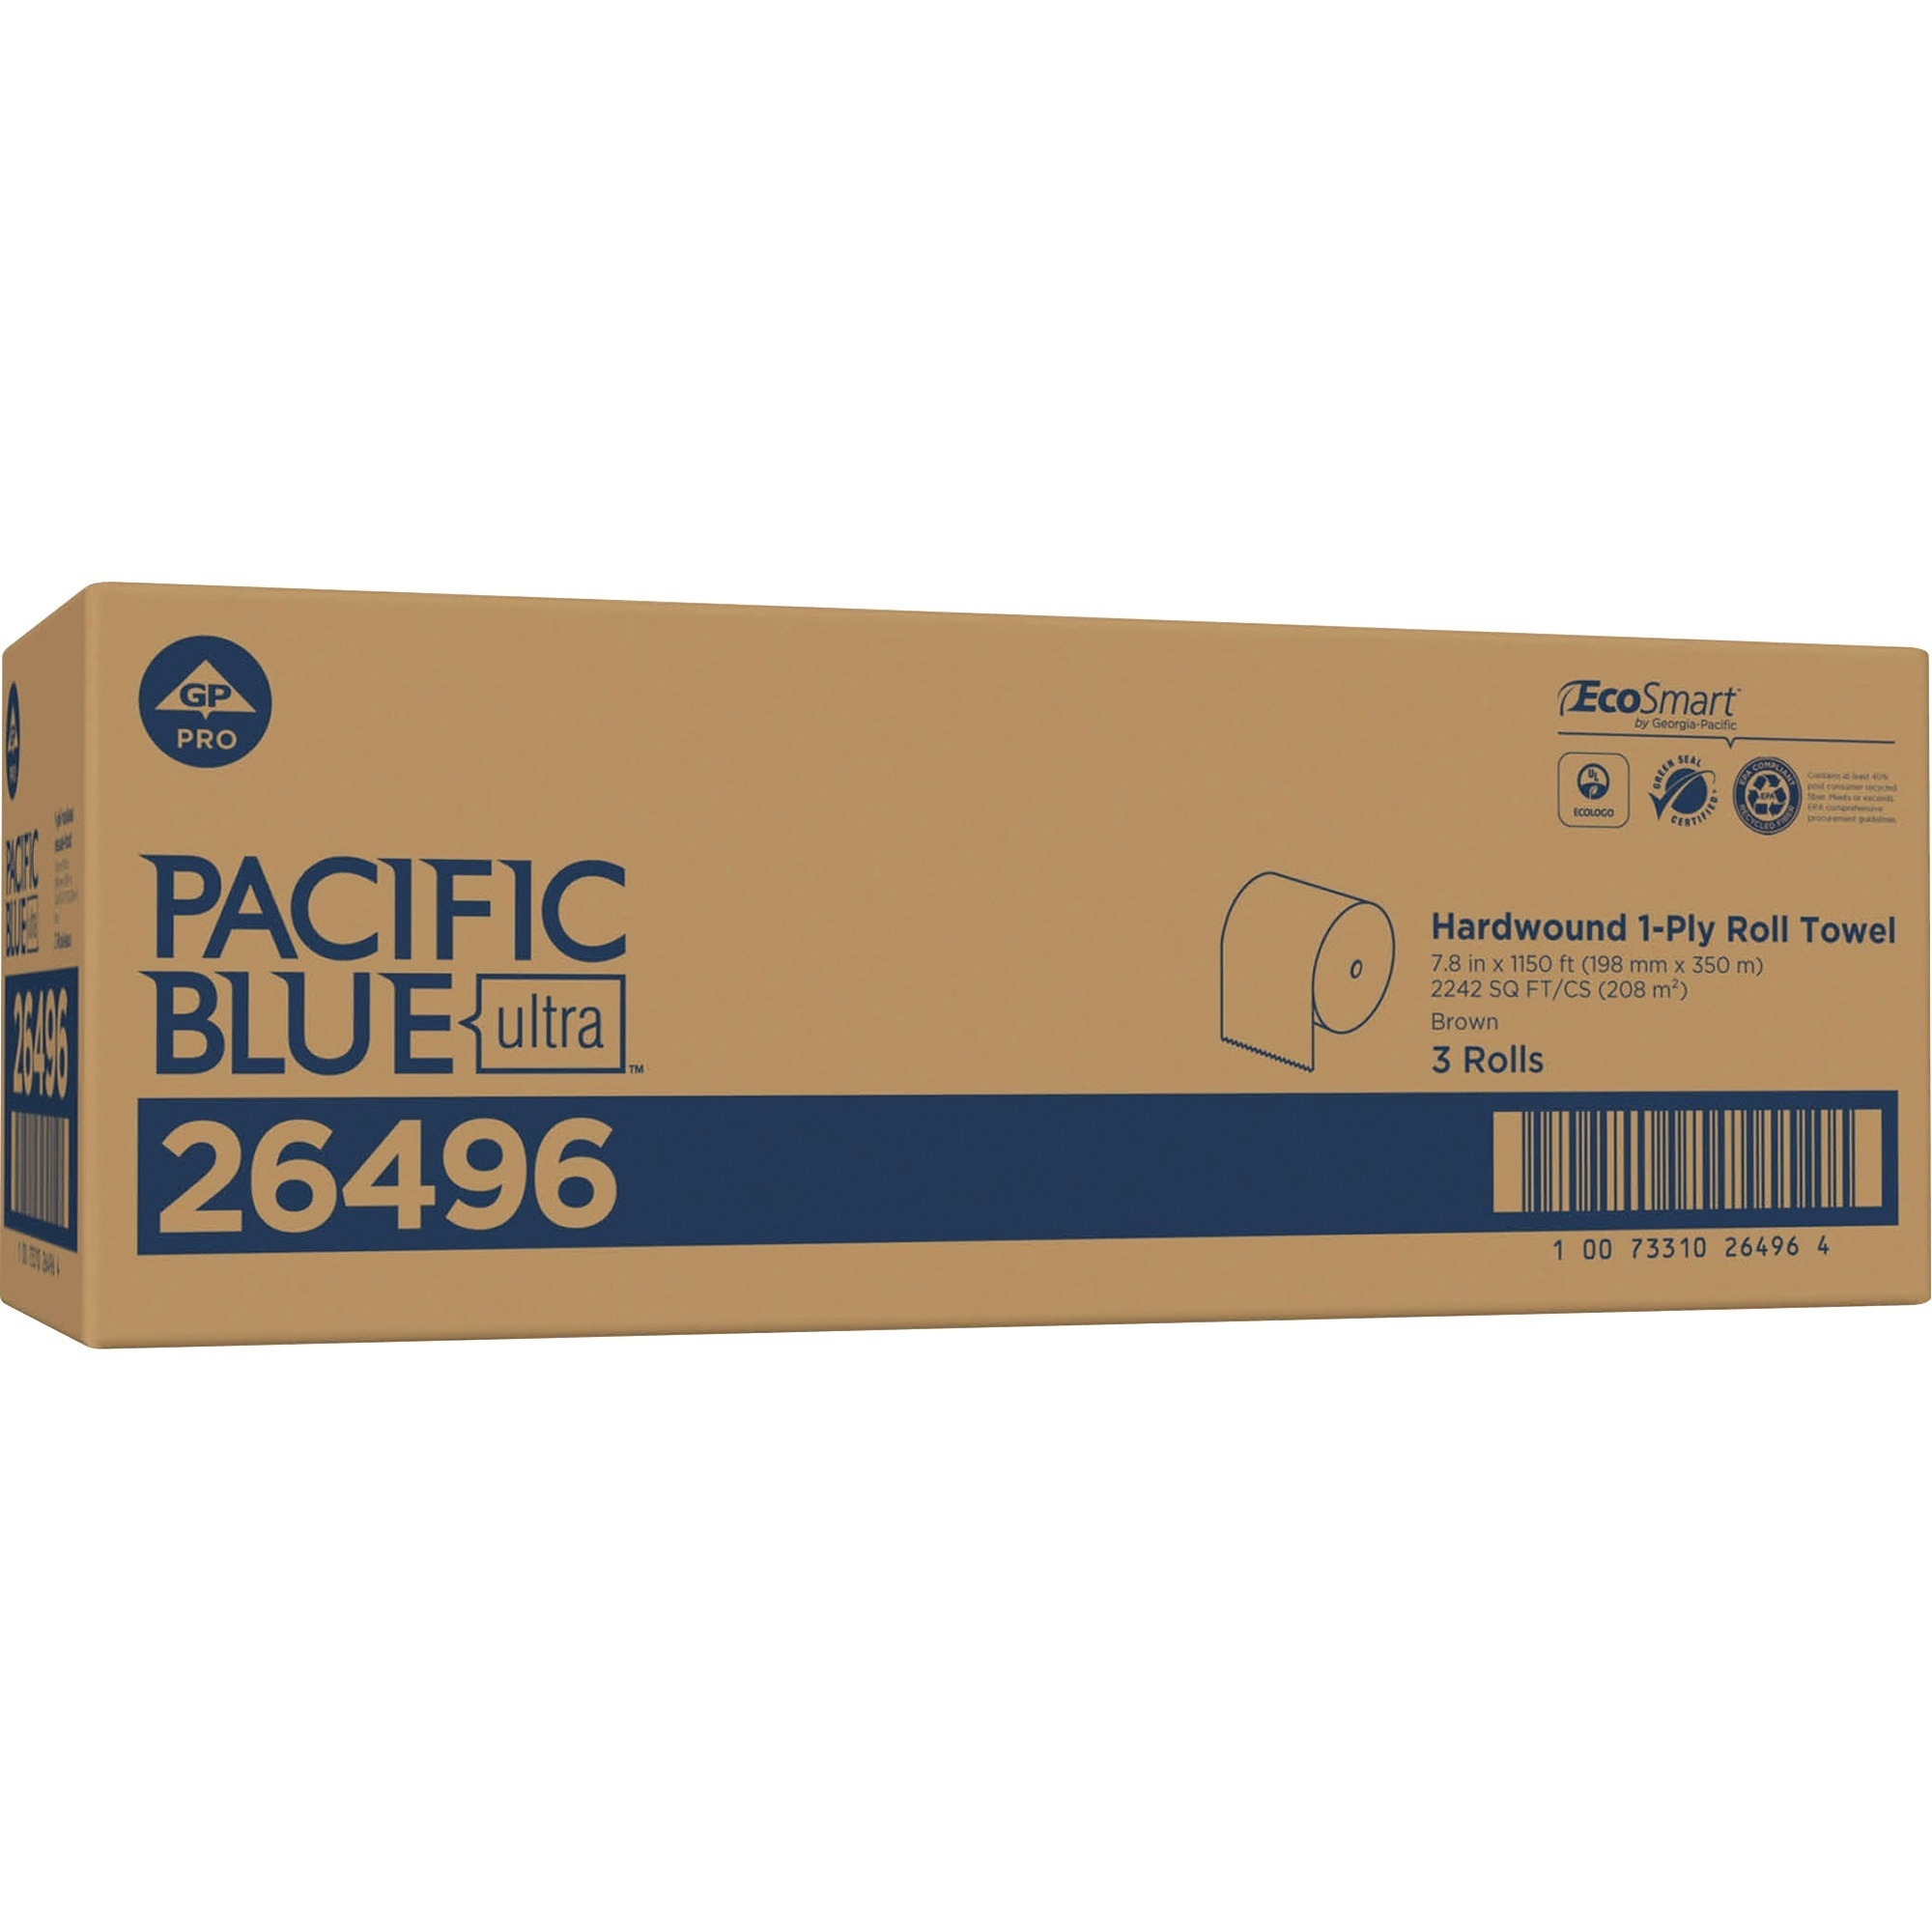 Pacific Blue Ultra, GPC26496, 8Ó High-Capacity Recycled Paper Towel Roll by GP PRO, 3 / Carton, Brown